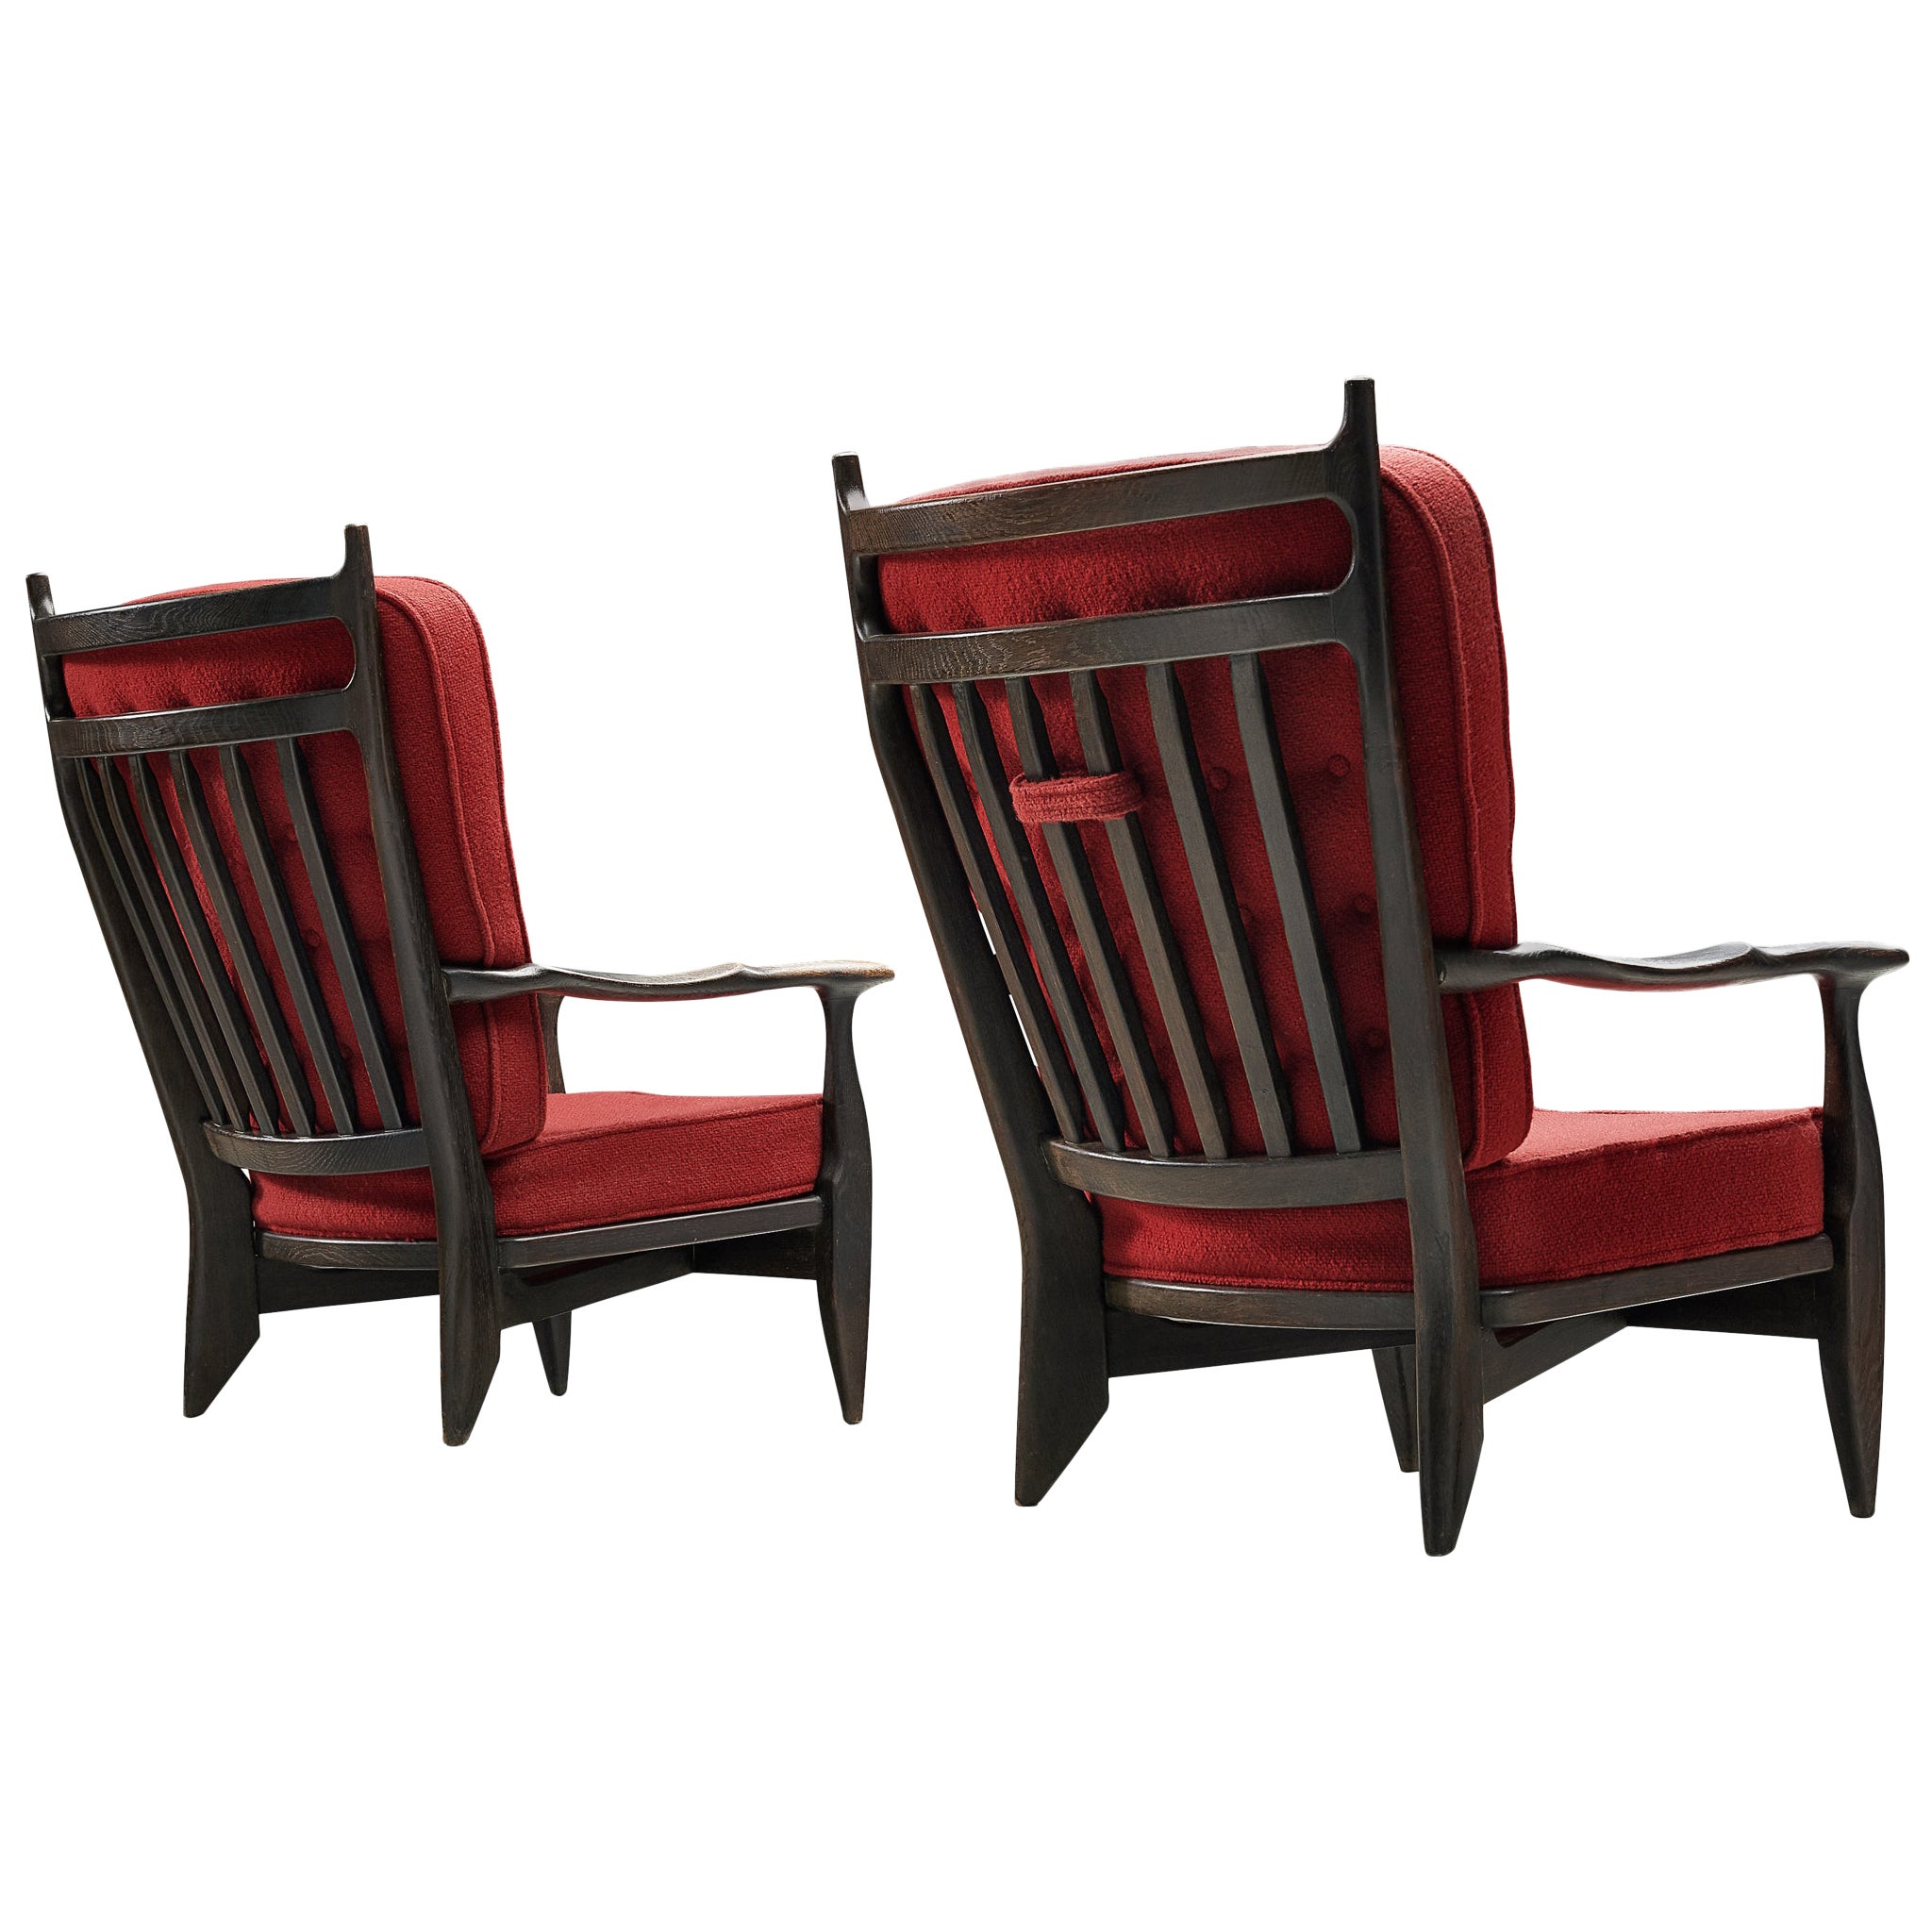 Guillerme et Chambron Lounge Chairs in Oak with Red Upholstery